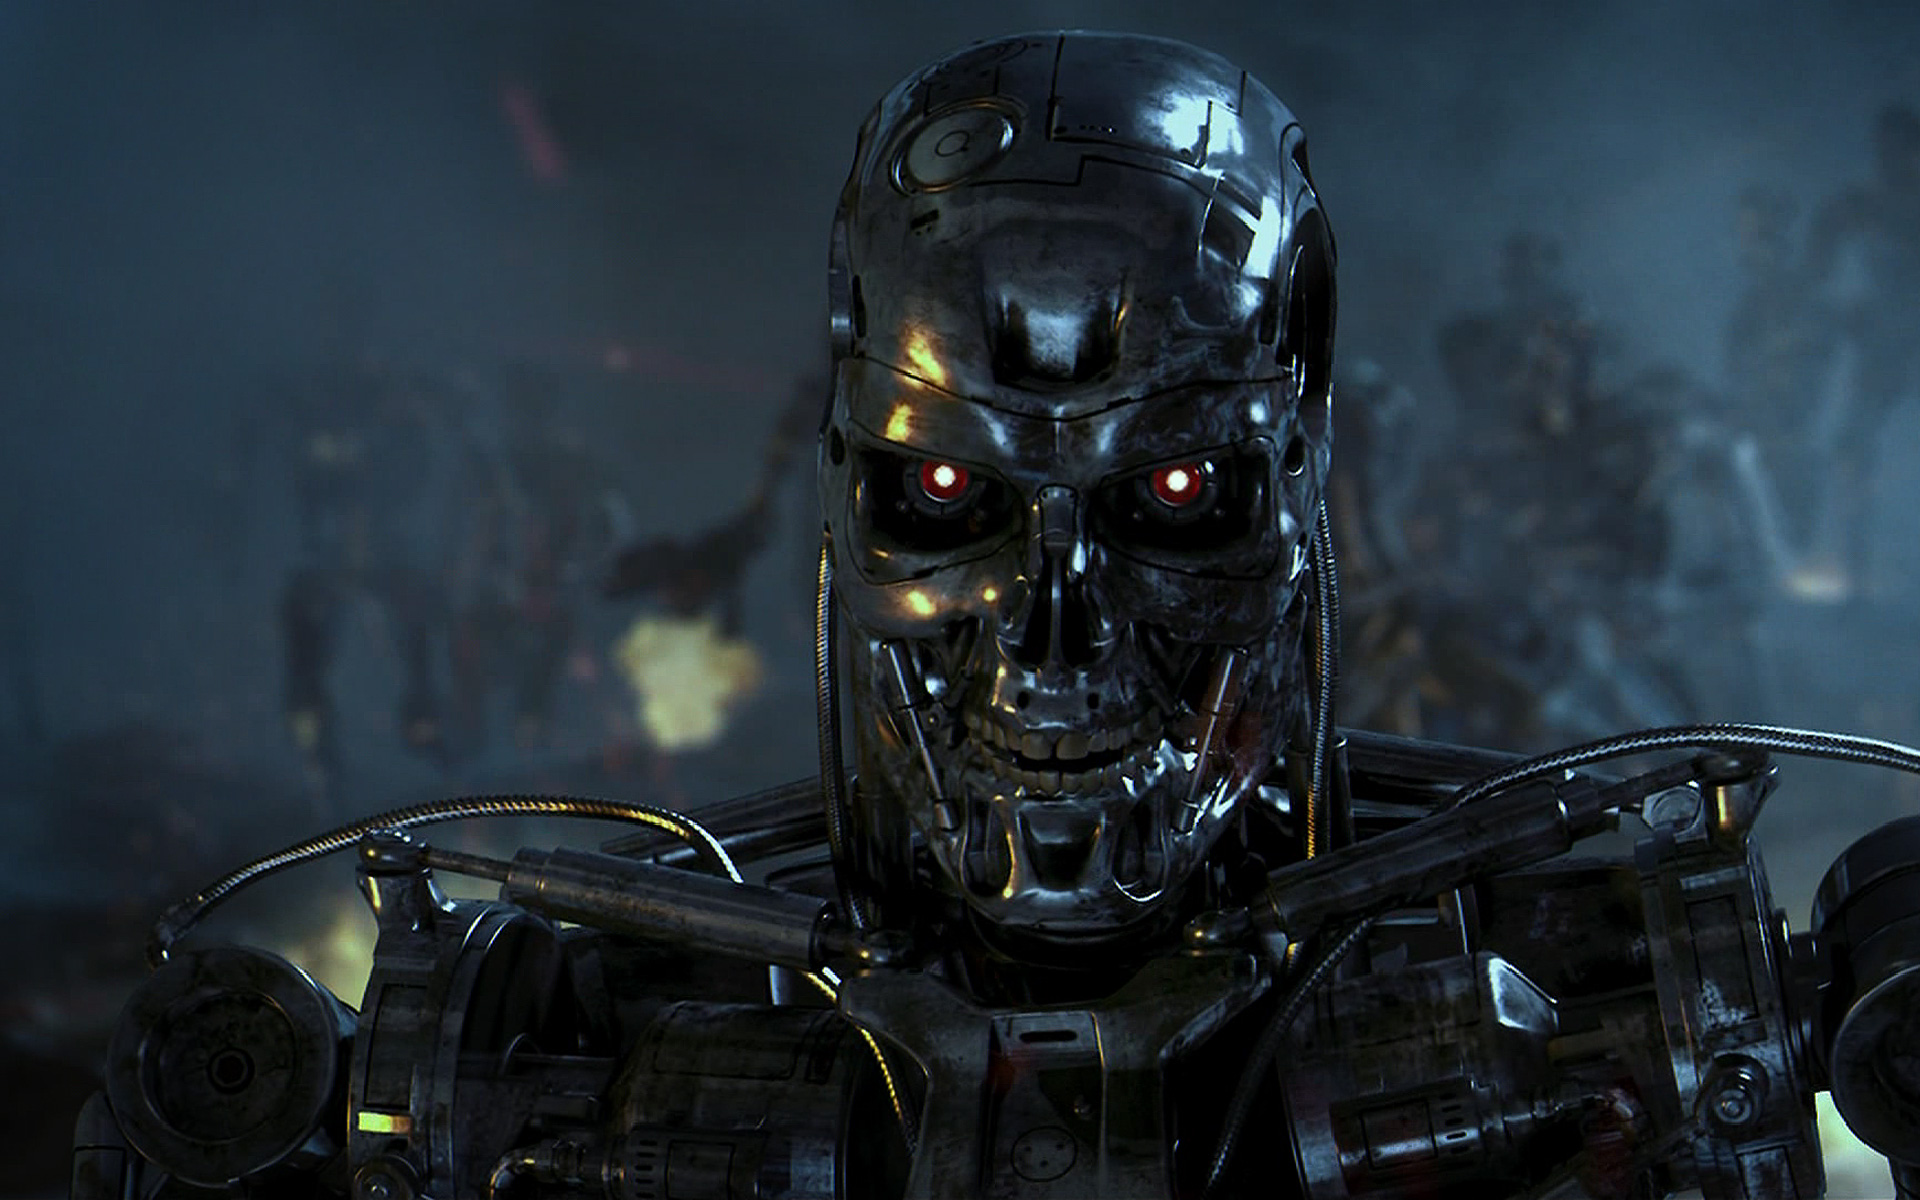 Terminator t101 - Movies & Entertainment Background Wallpapers on ...